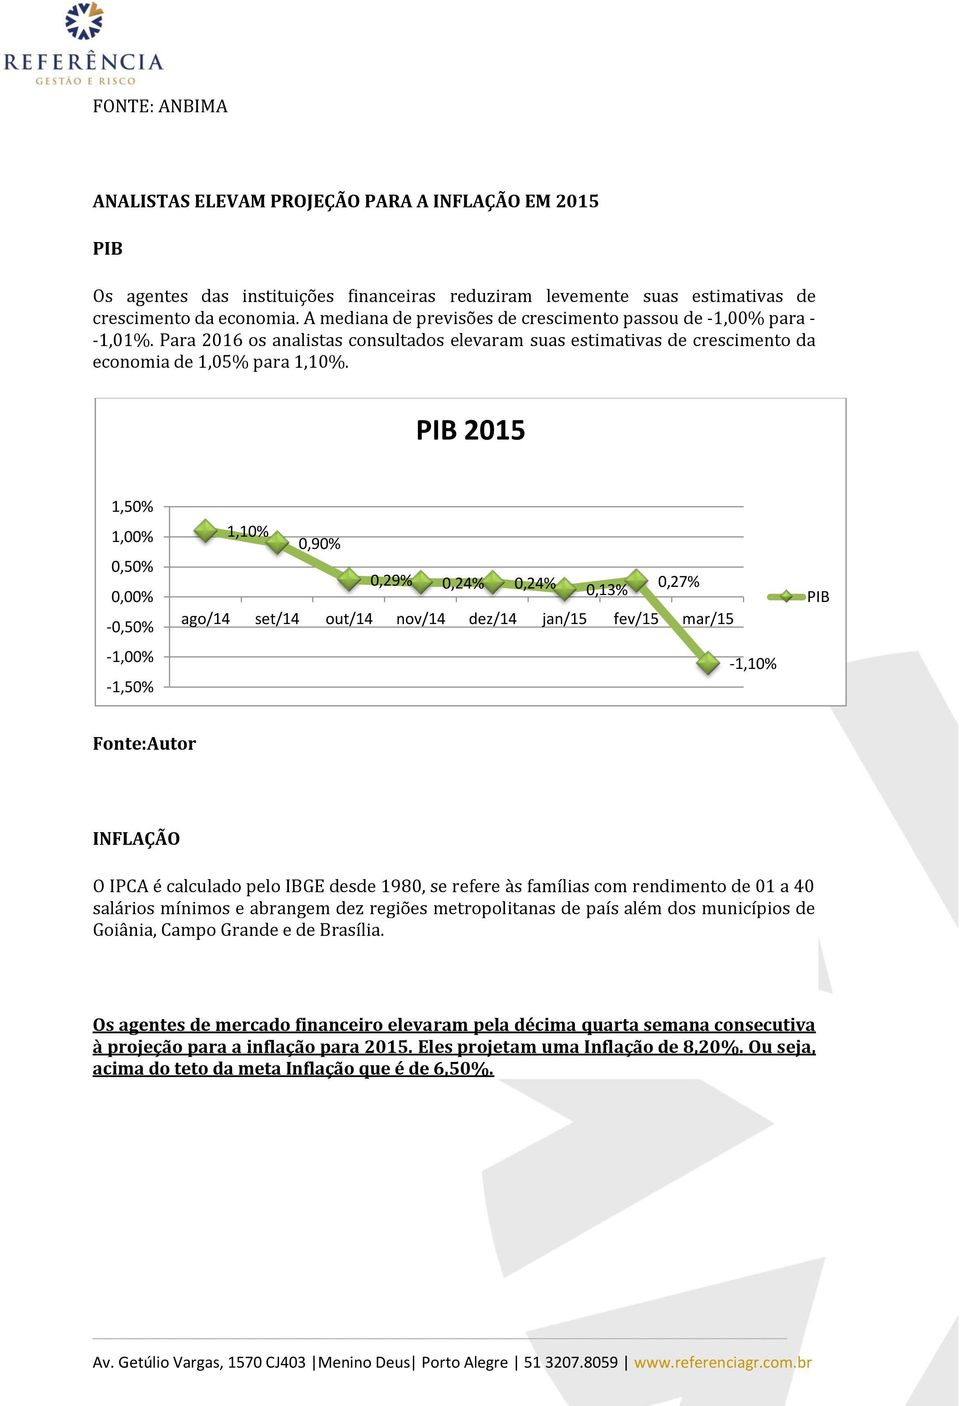 PIB 2015 1,50% 1,00% 0,50% 0,00% -0,50% -1,00% -1,50% 1,10% 0,90% 0,29% 0,24% 0,24% 0,13% 0,27% ago/14 set/14 out/14 nov/14 dez/14 jan/15 fev/15 mar/15-1,10% PIB Fonte:Autor INFLAÇÃO O IPCA é